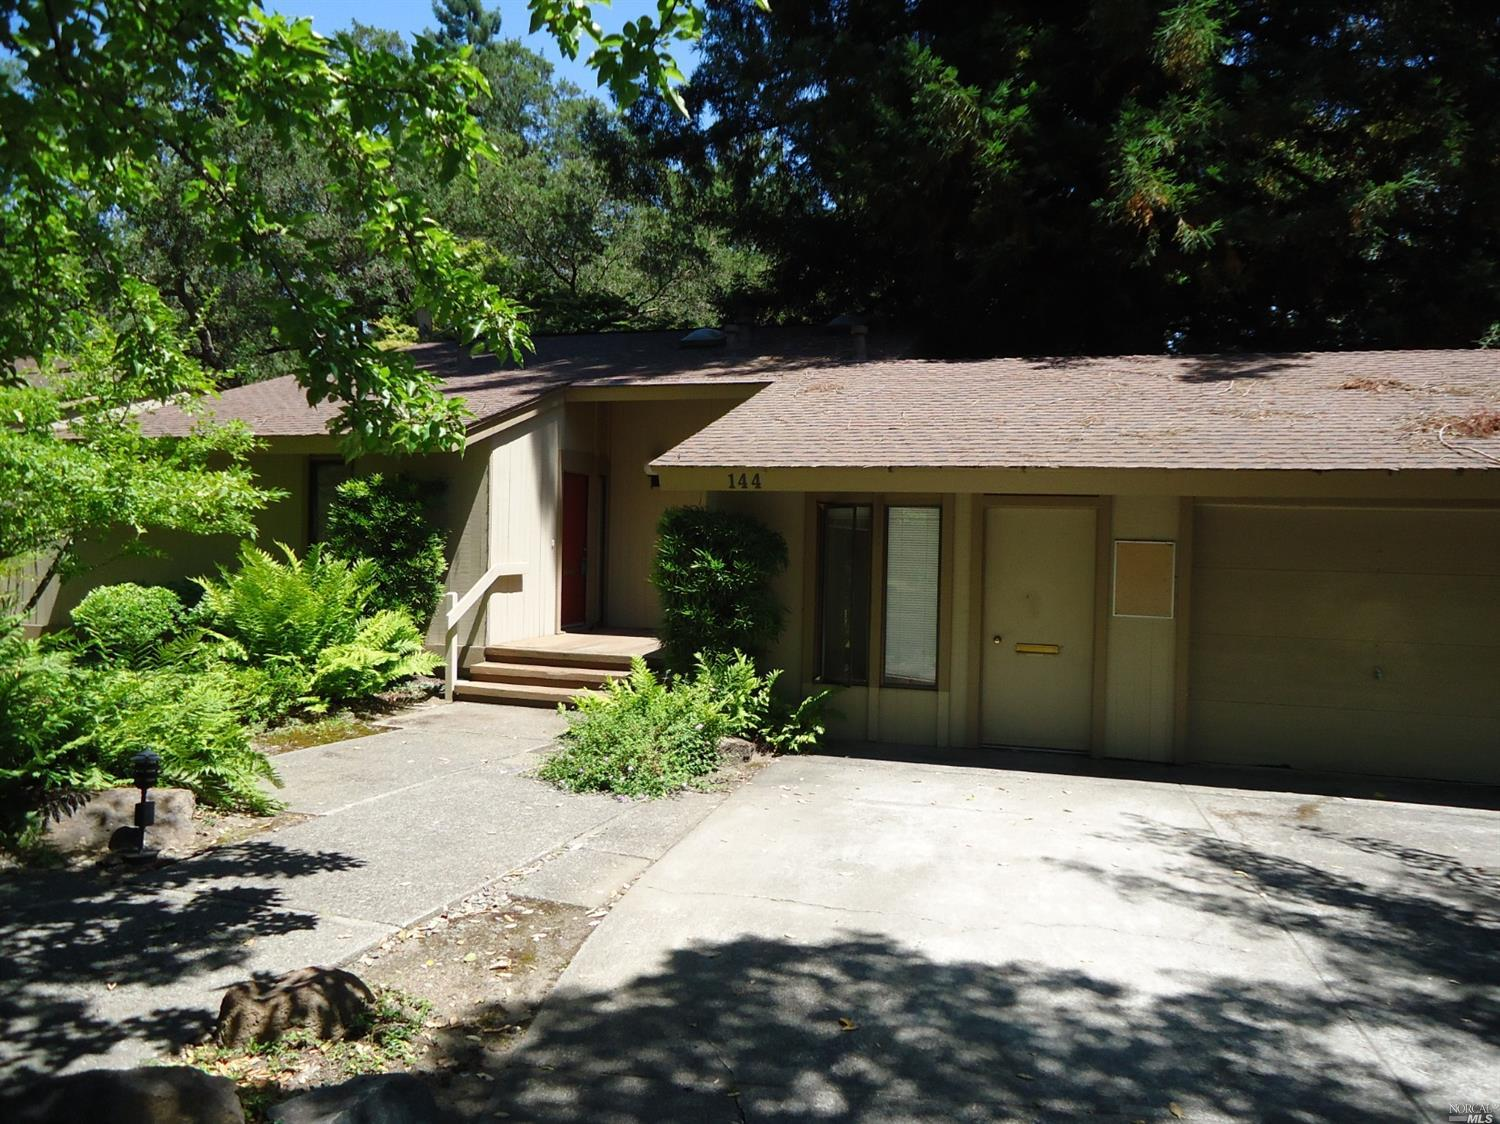 144 Bonnie Brook Dr, Napa, CA 94558 - MLS 21920453 - Coldwell Banker